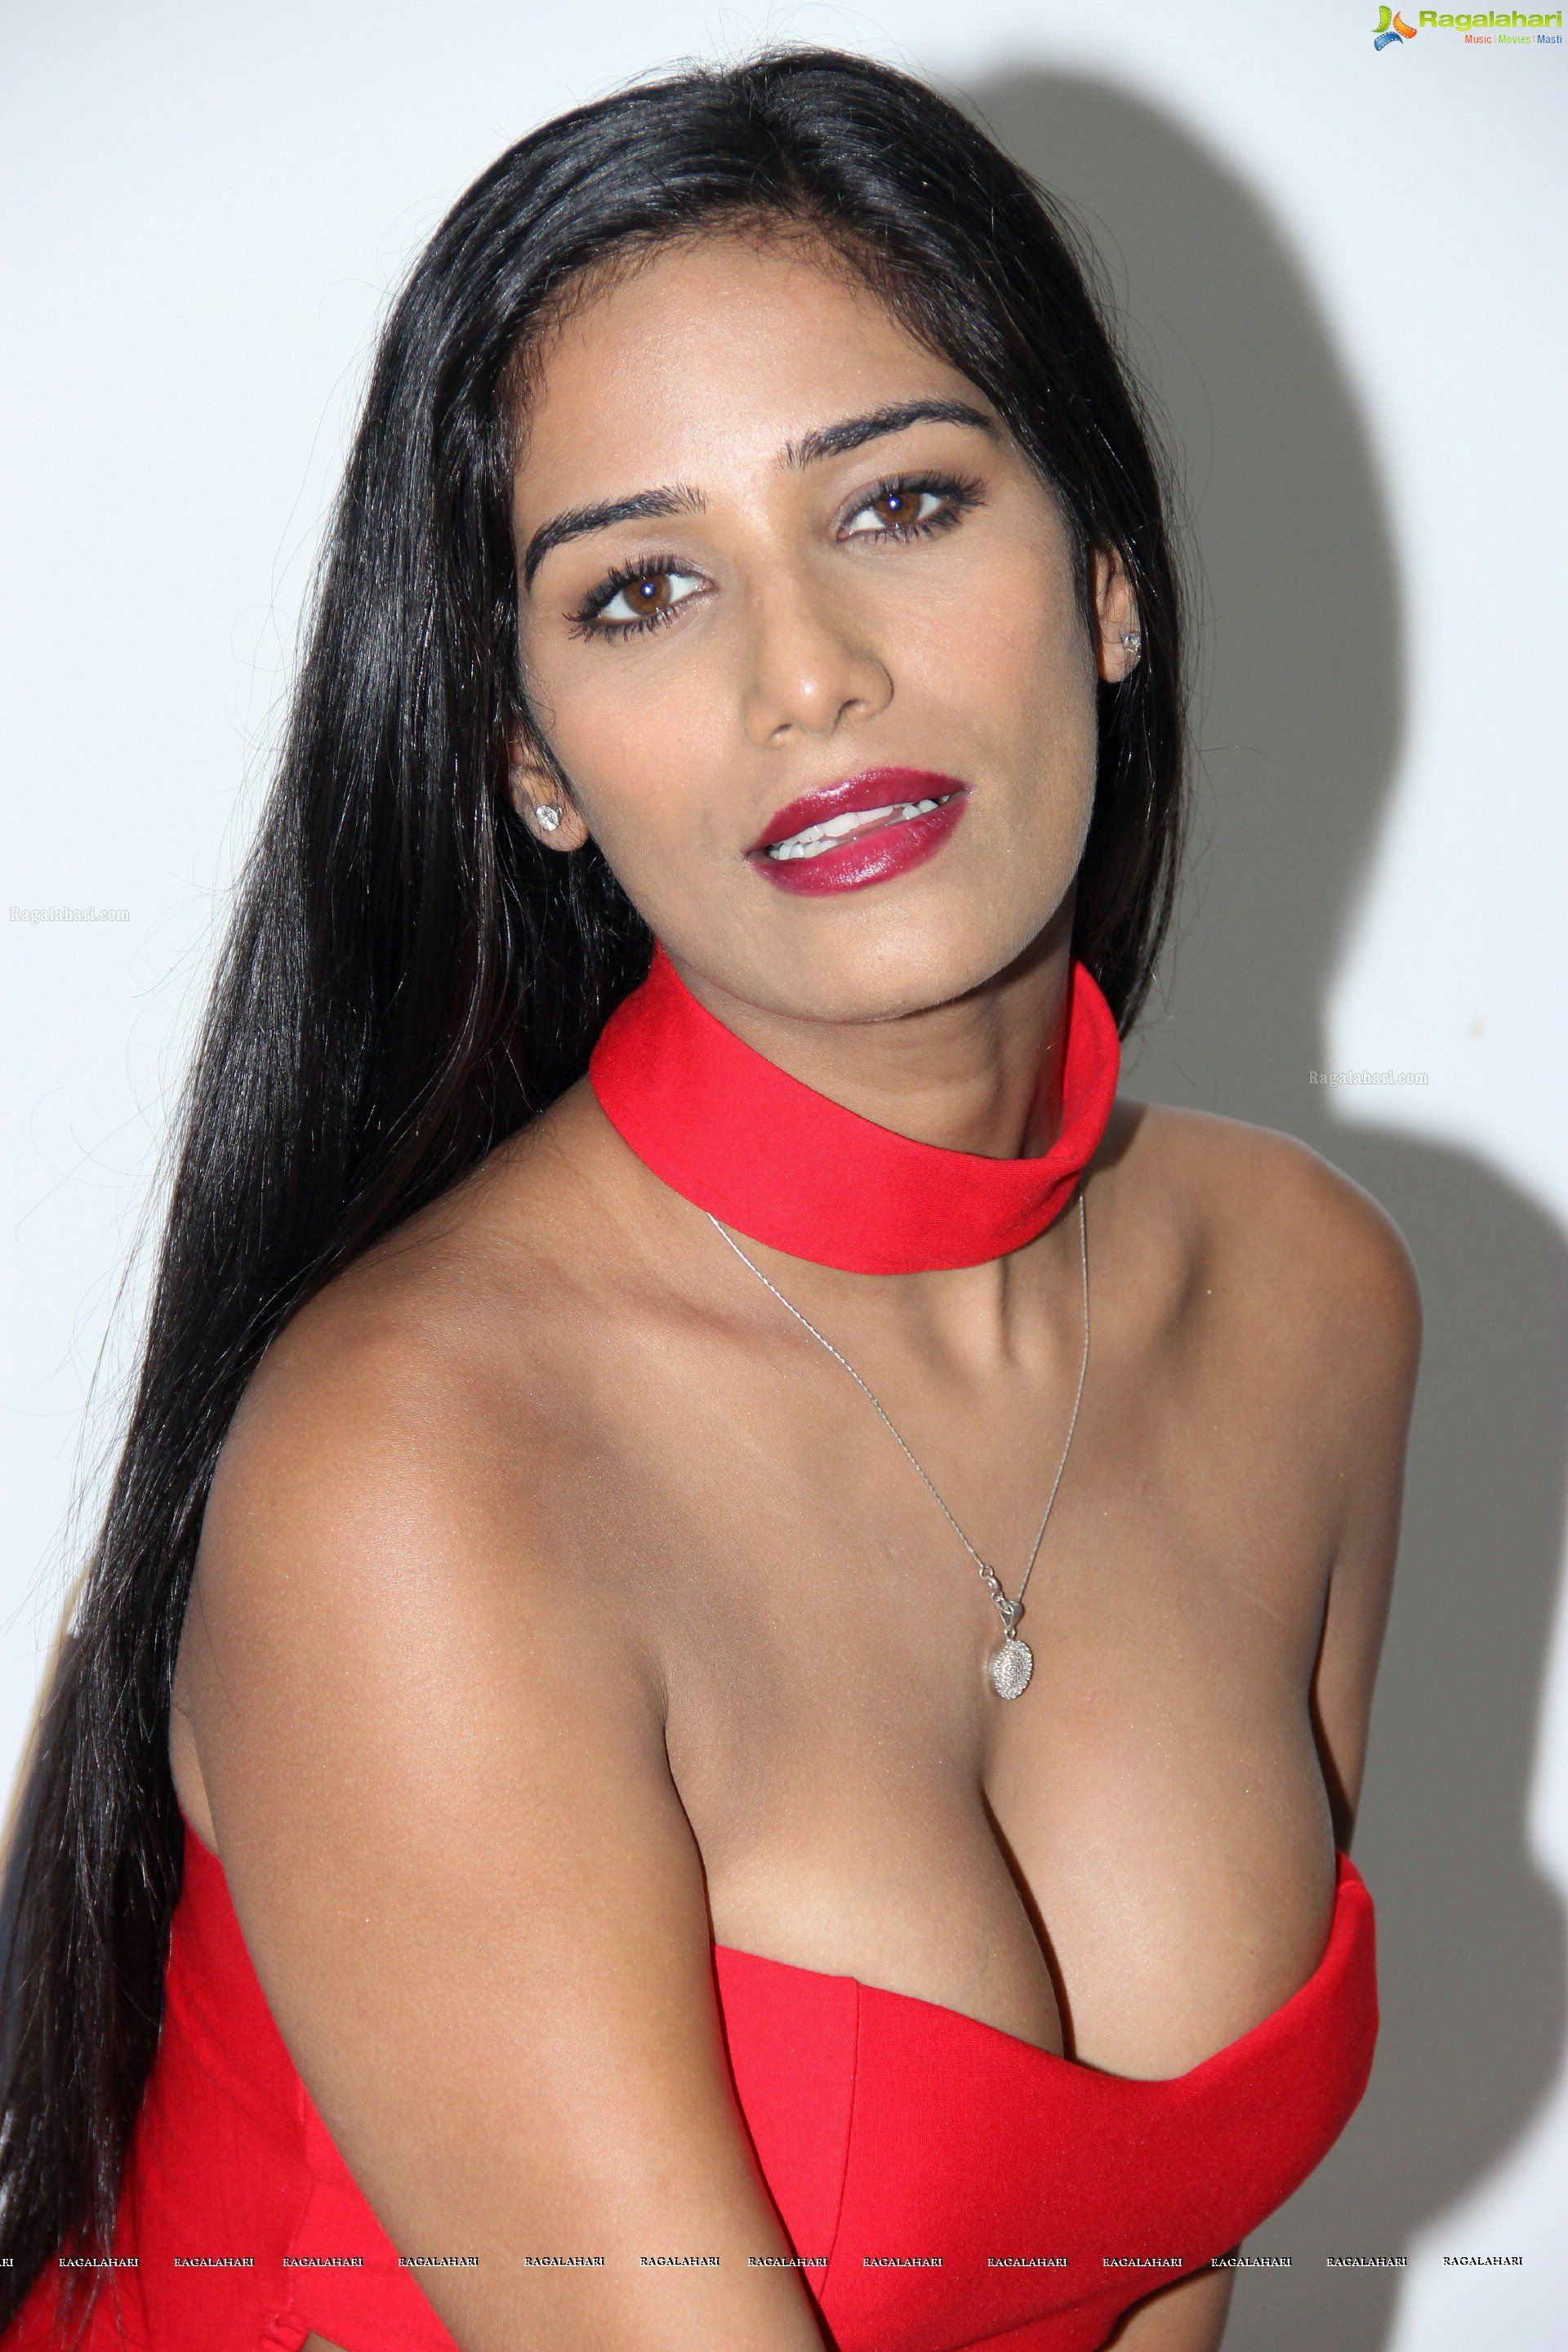 poonam pandey (hd) image 2 | tollywood heroines wallpapers ,stills